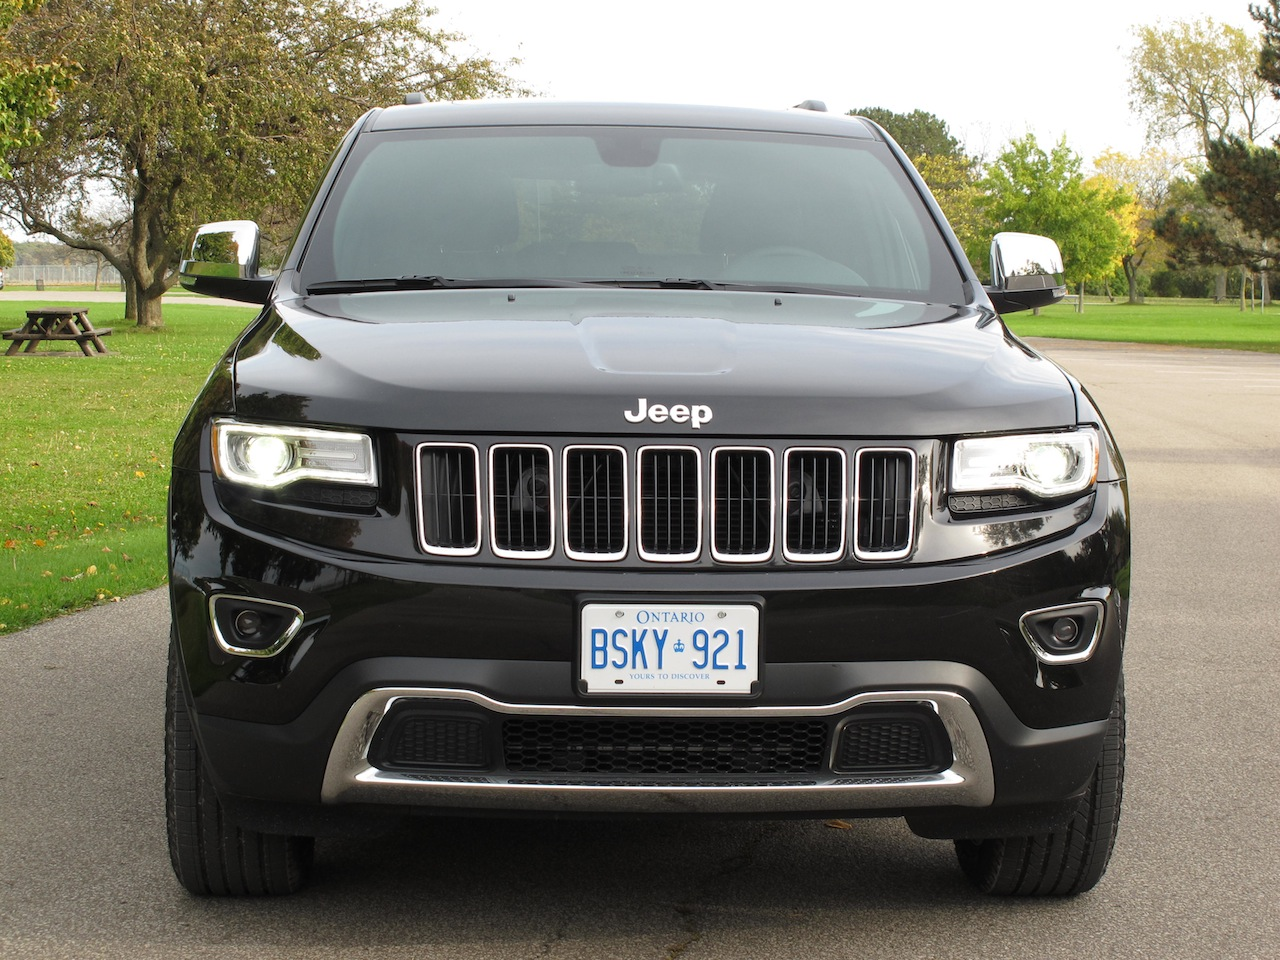 2014 jeep grand cherokee photo gallery cars photos test drives. Cars Review. Best American Auto & Cars Review